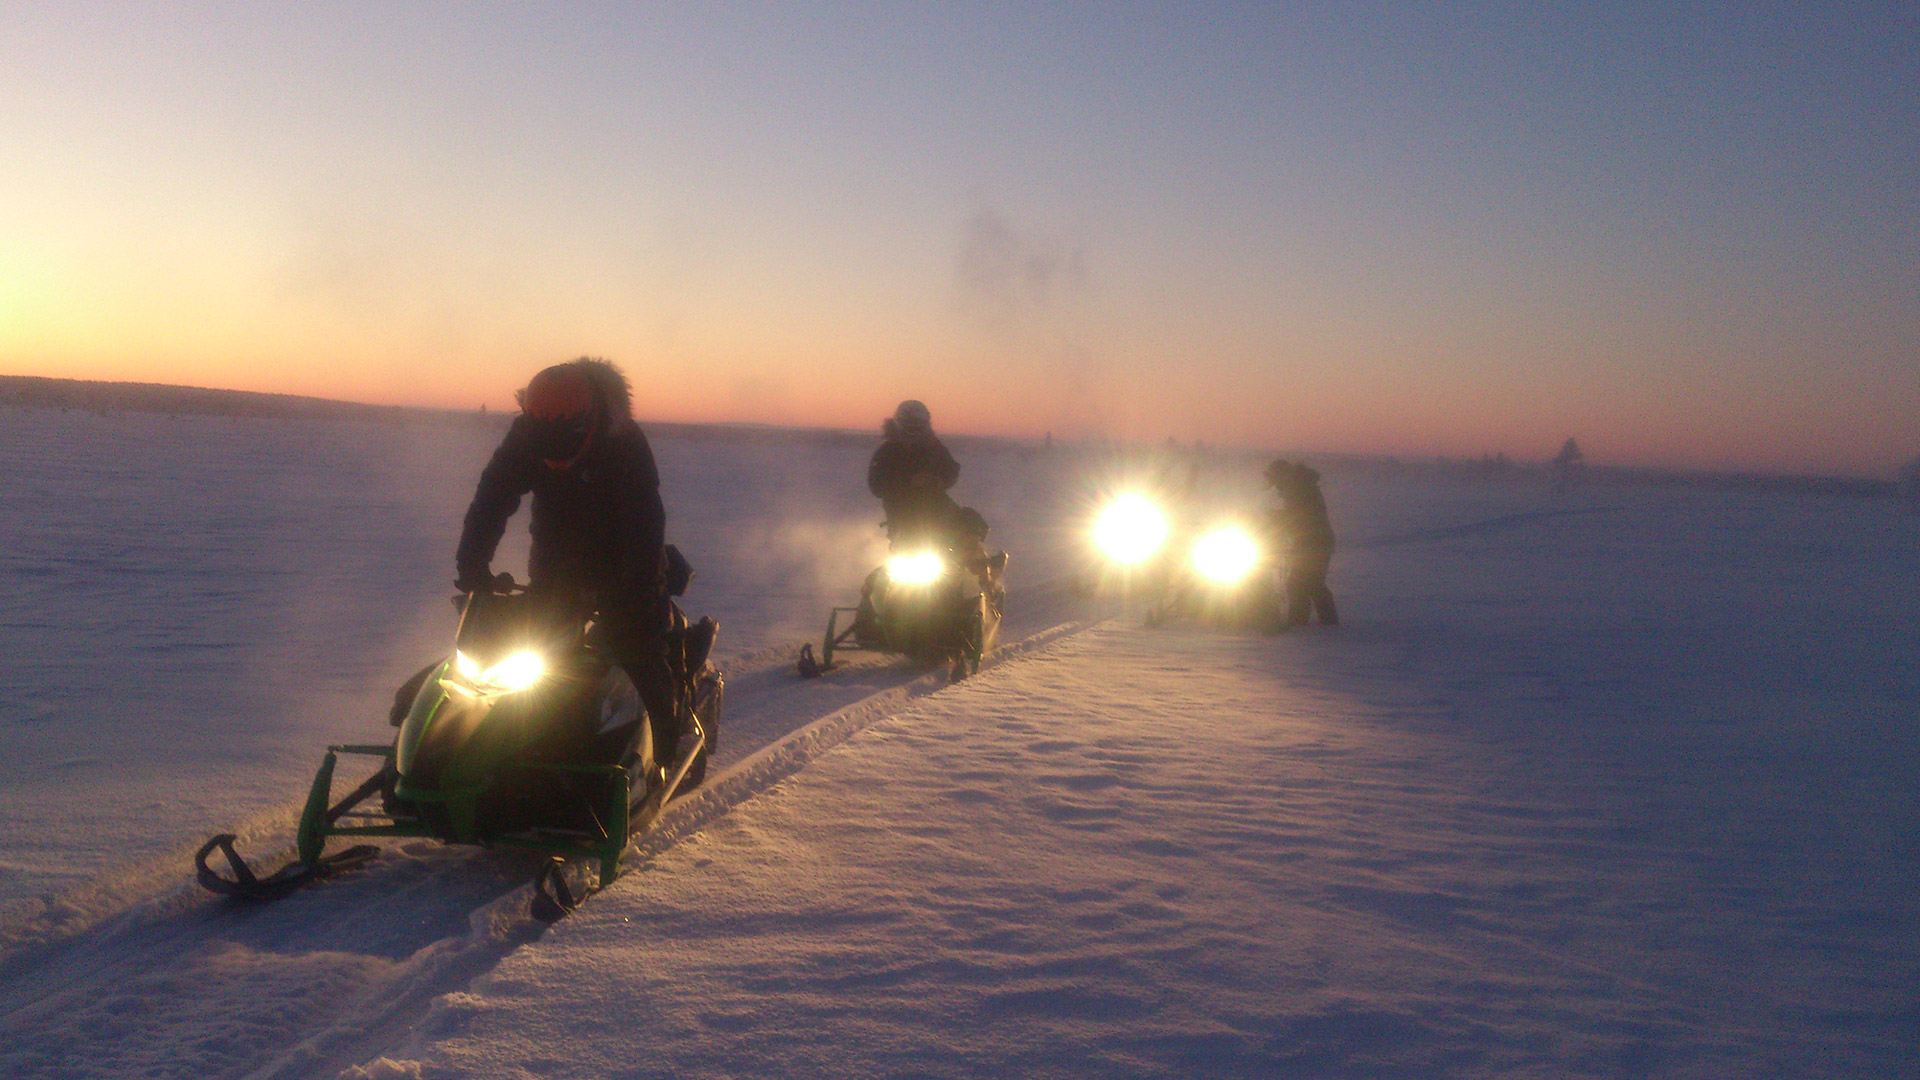 Snowbobile safari in dusk - Lapland